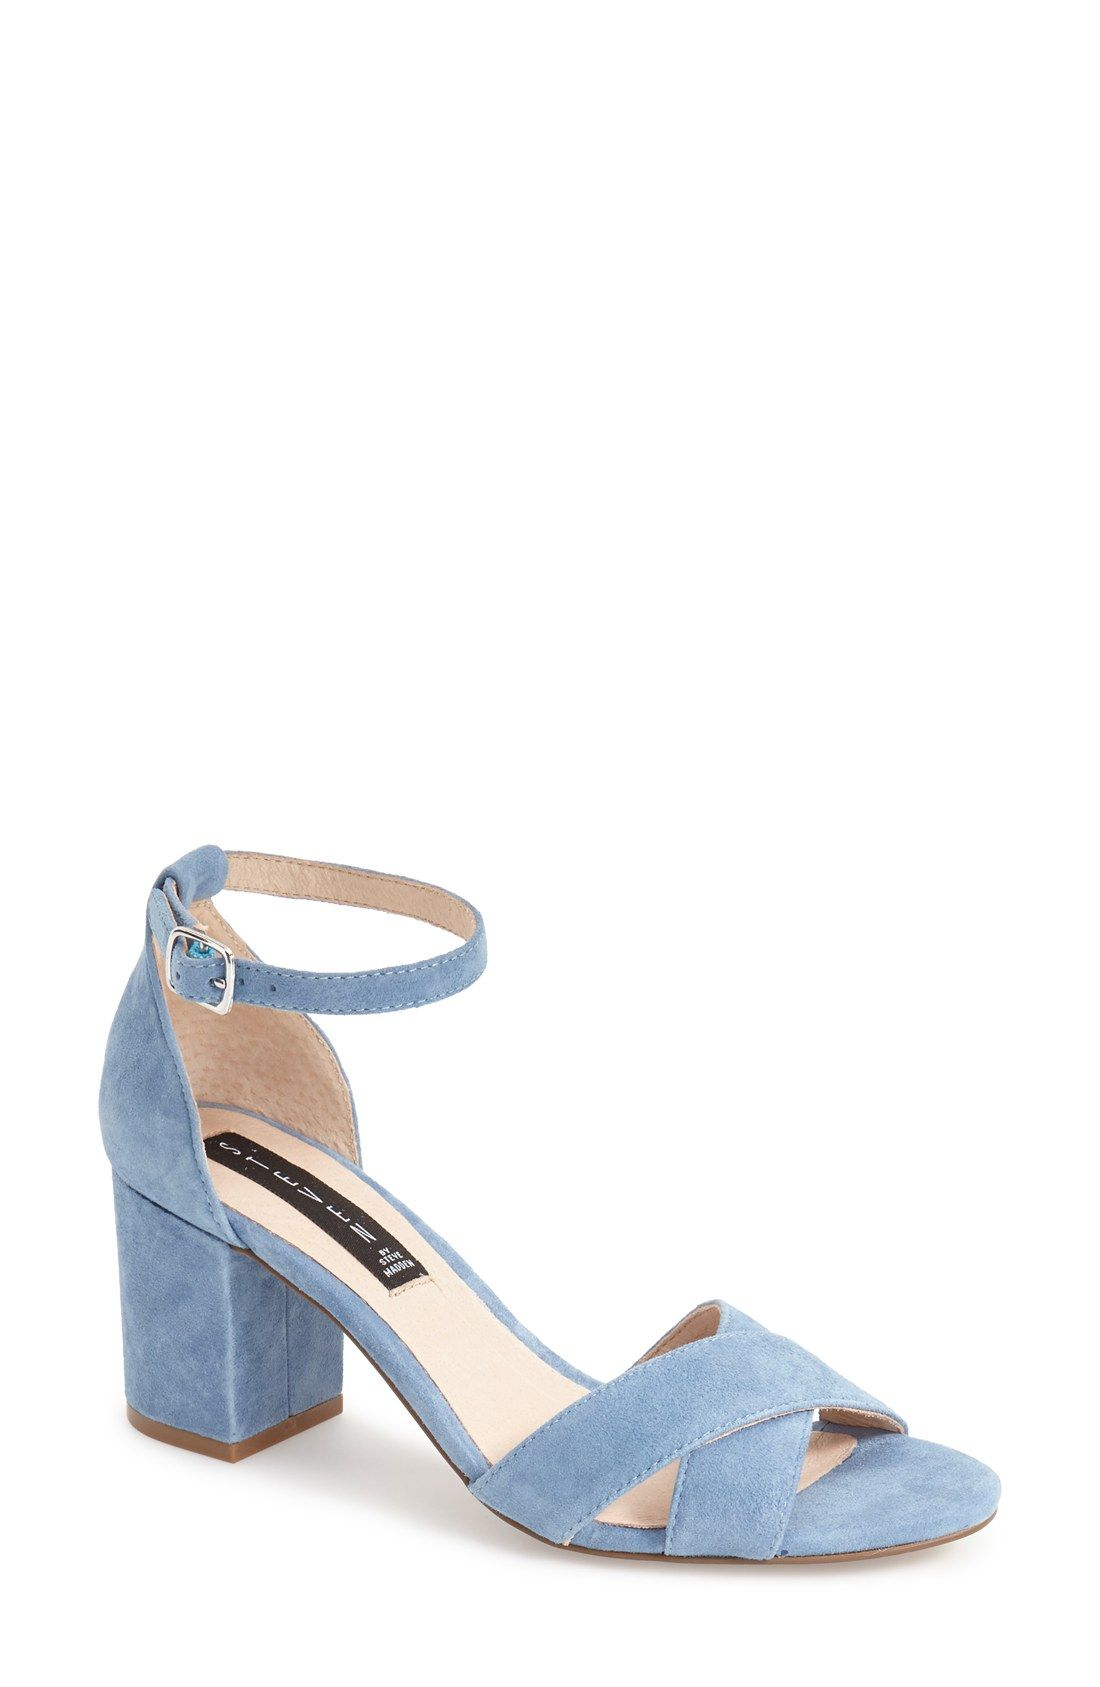 43de71354ad Blue suede shoes! This pair from Steve Madden has a slim ankle strap and block  heel for a chic look.